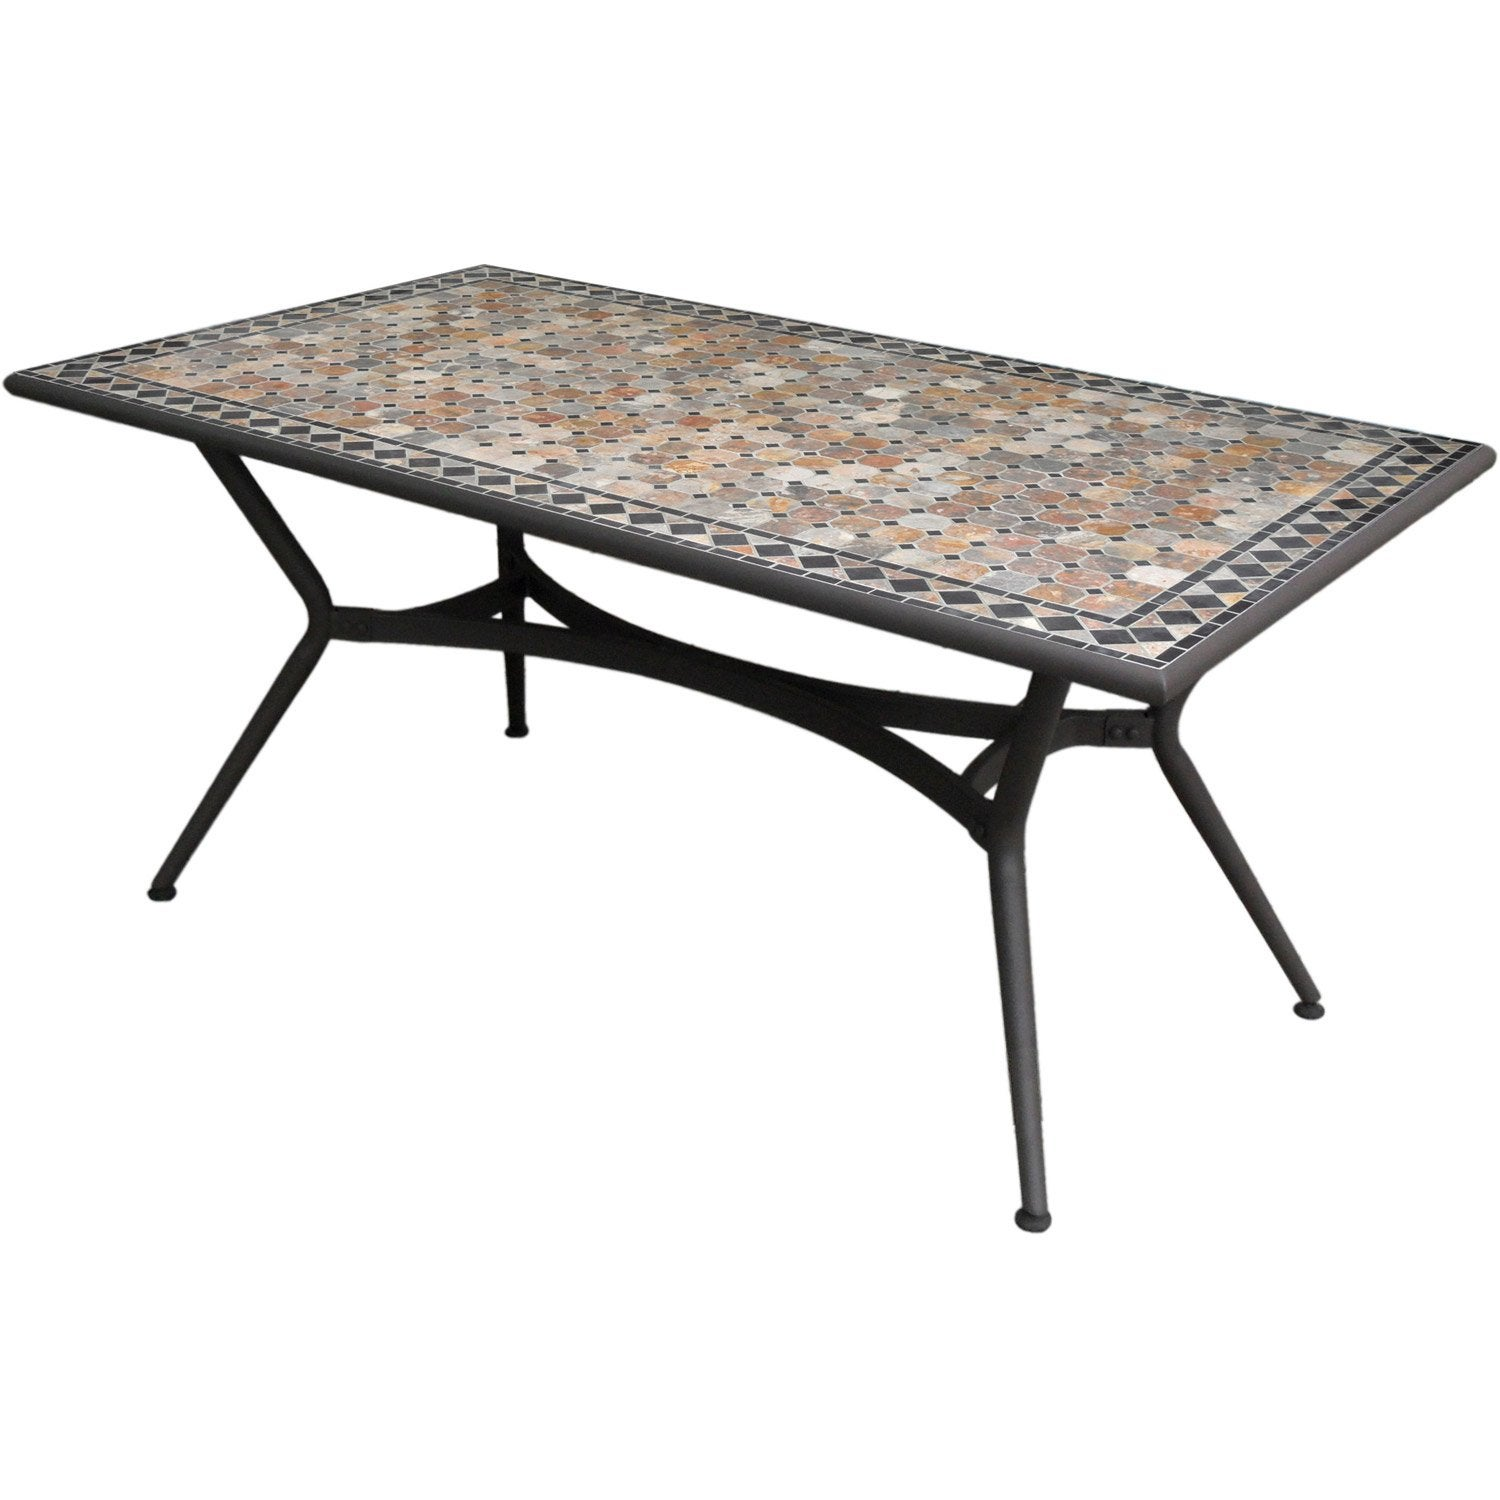 Table de jardin marocco rectangulaire bronze 6 personnes for Table de cuisine pliante leroy merlin